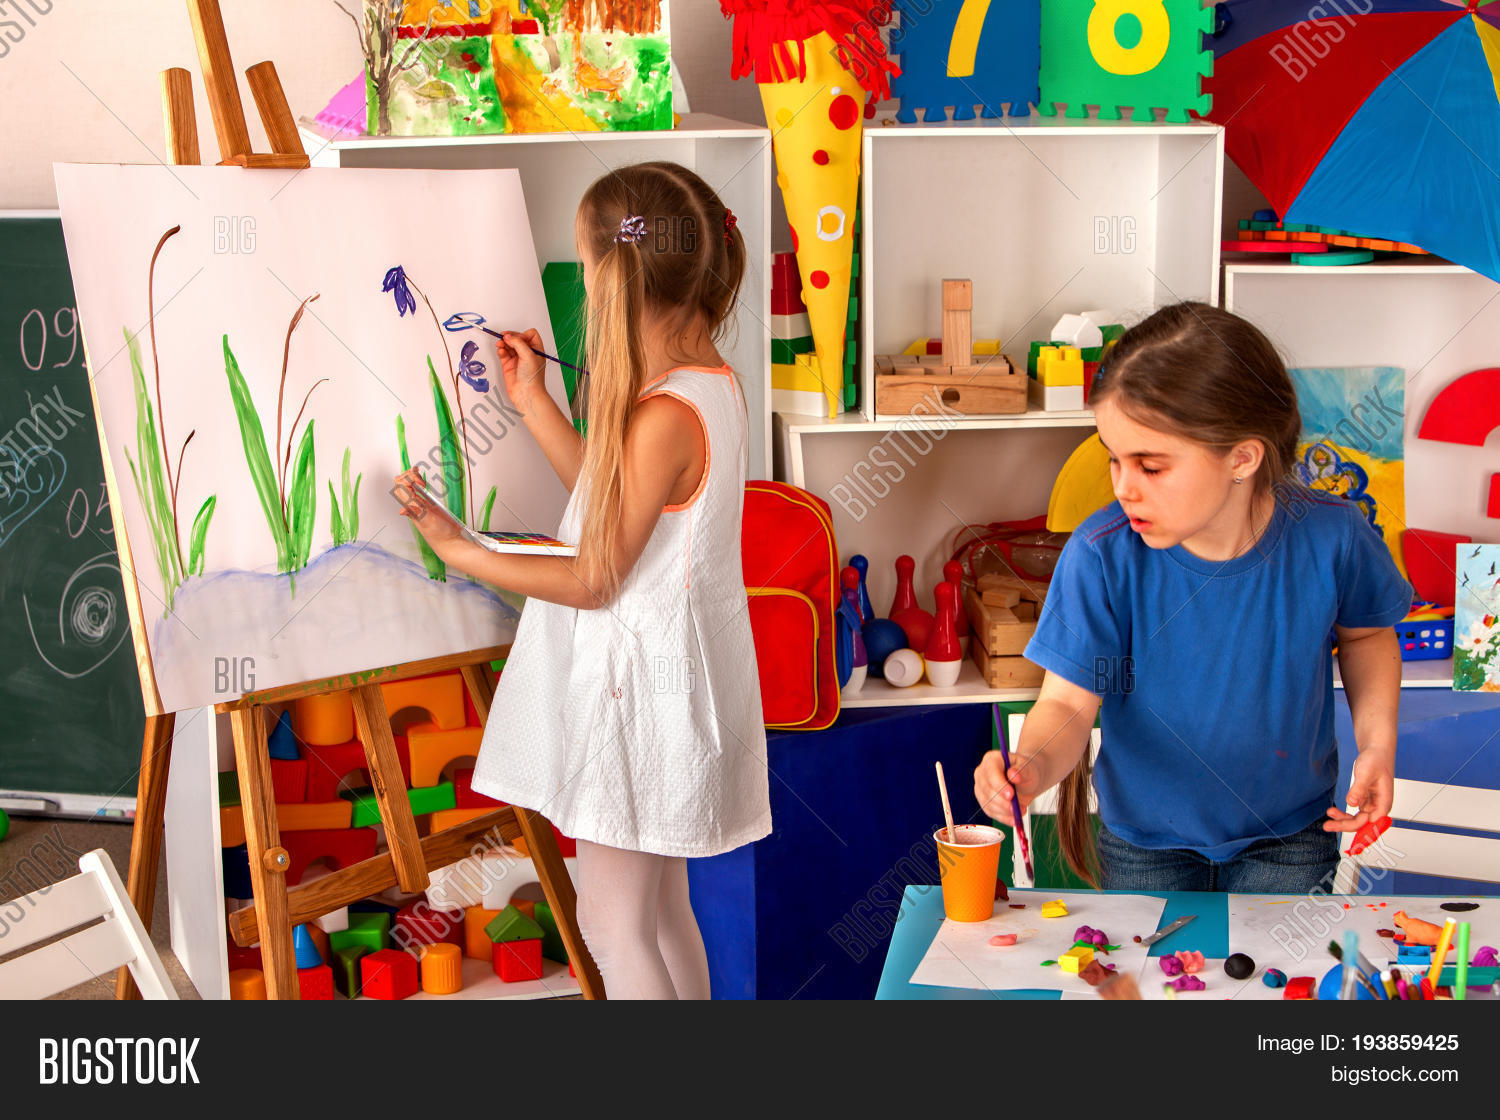 children painting finger on easel image u0026 photo bigstock